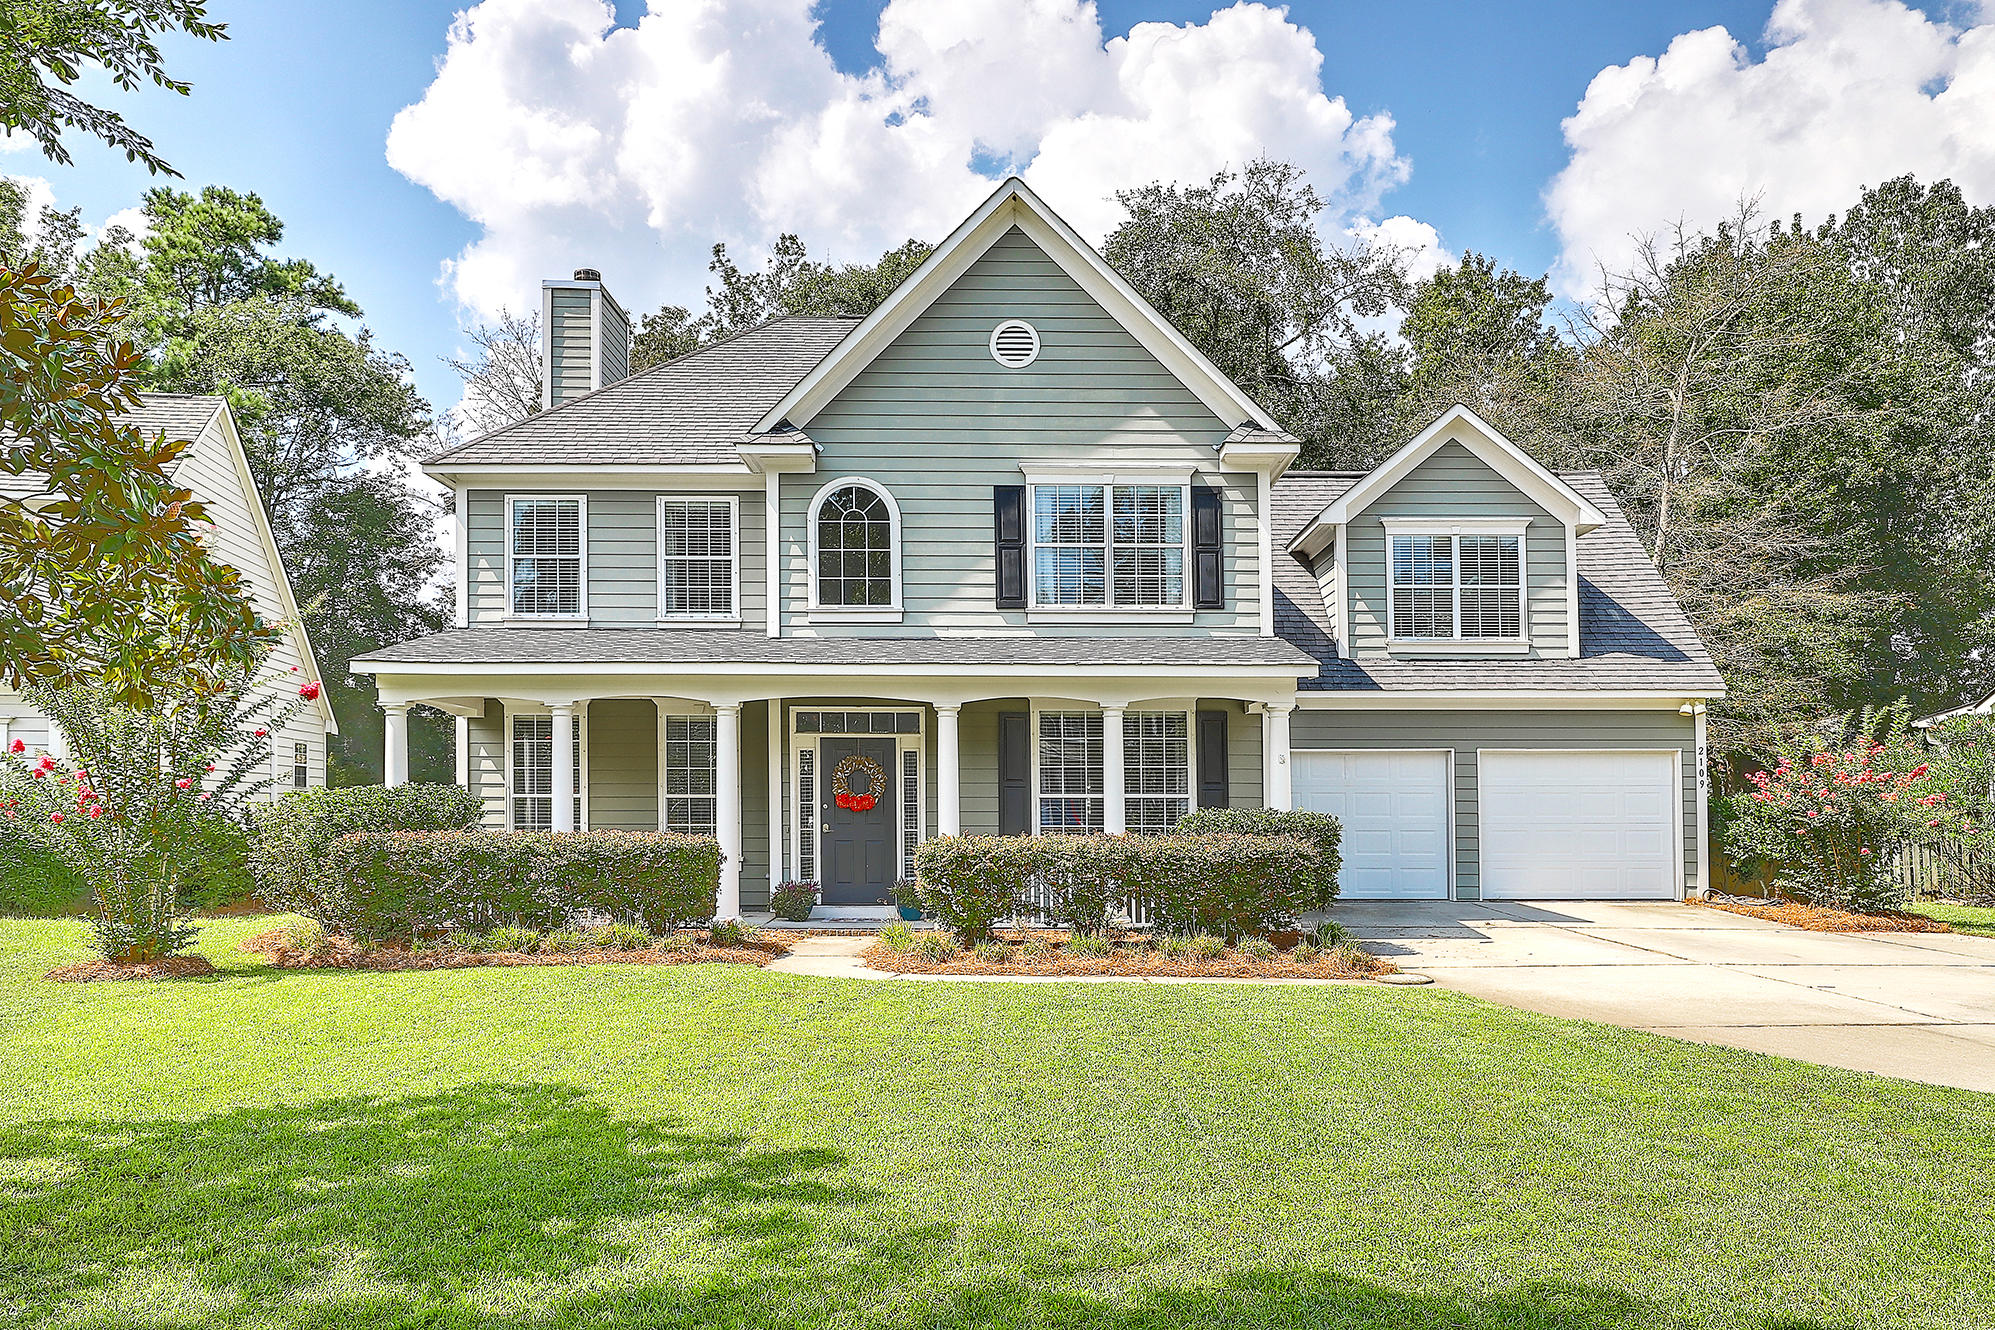 Dunes West Homes For Sale - 2109 Tall Grass, Mount Pleasant, SC - 23